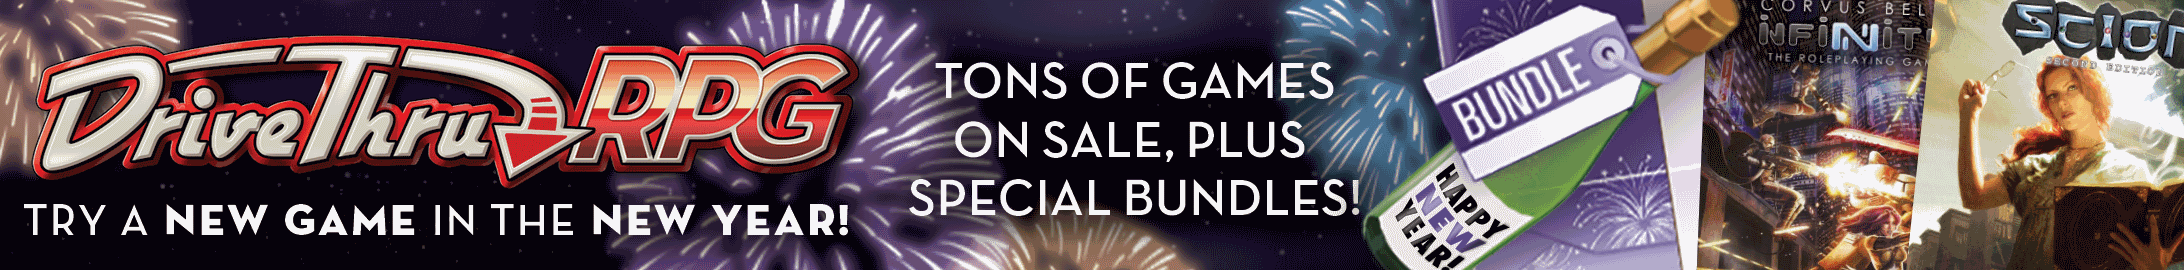 New Year, New Game Sale